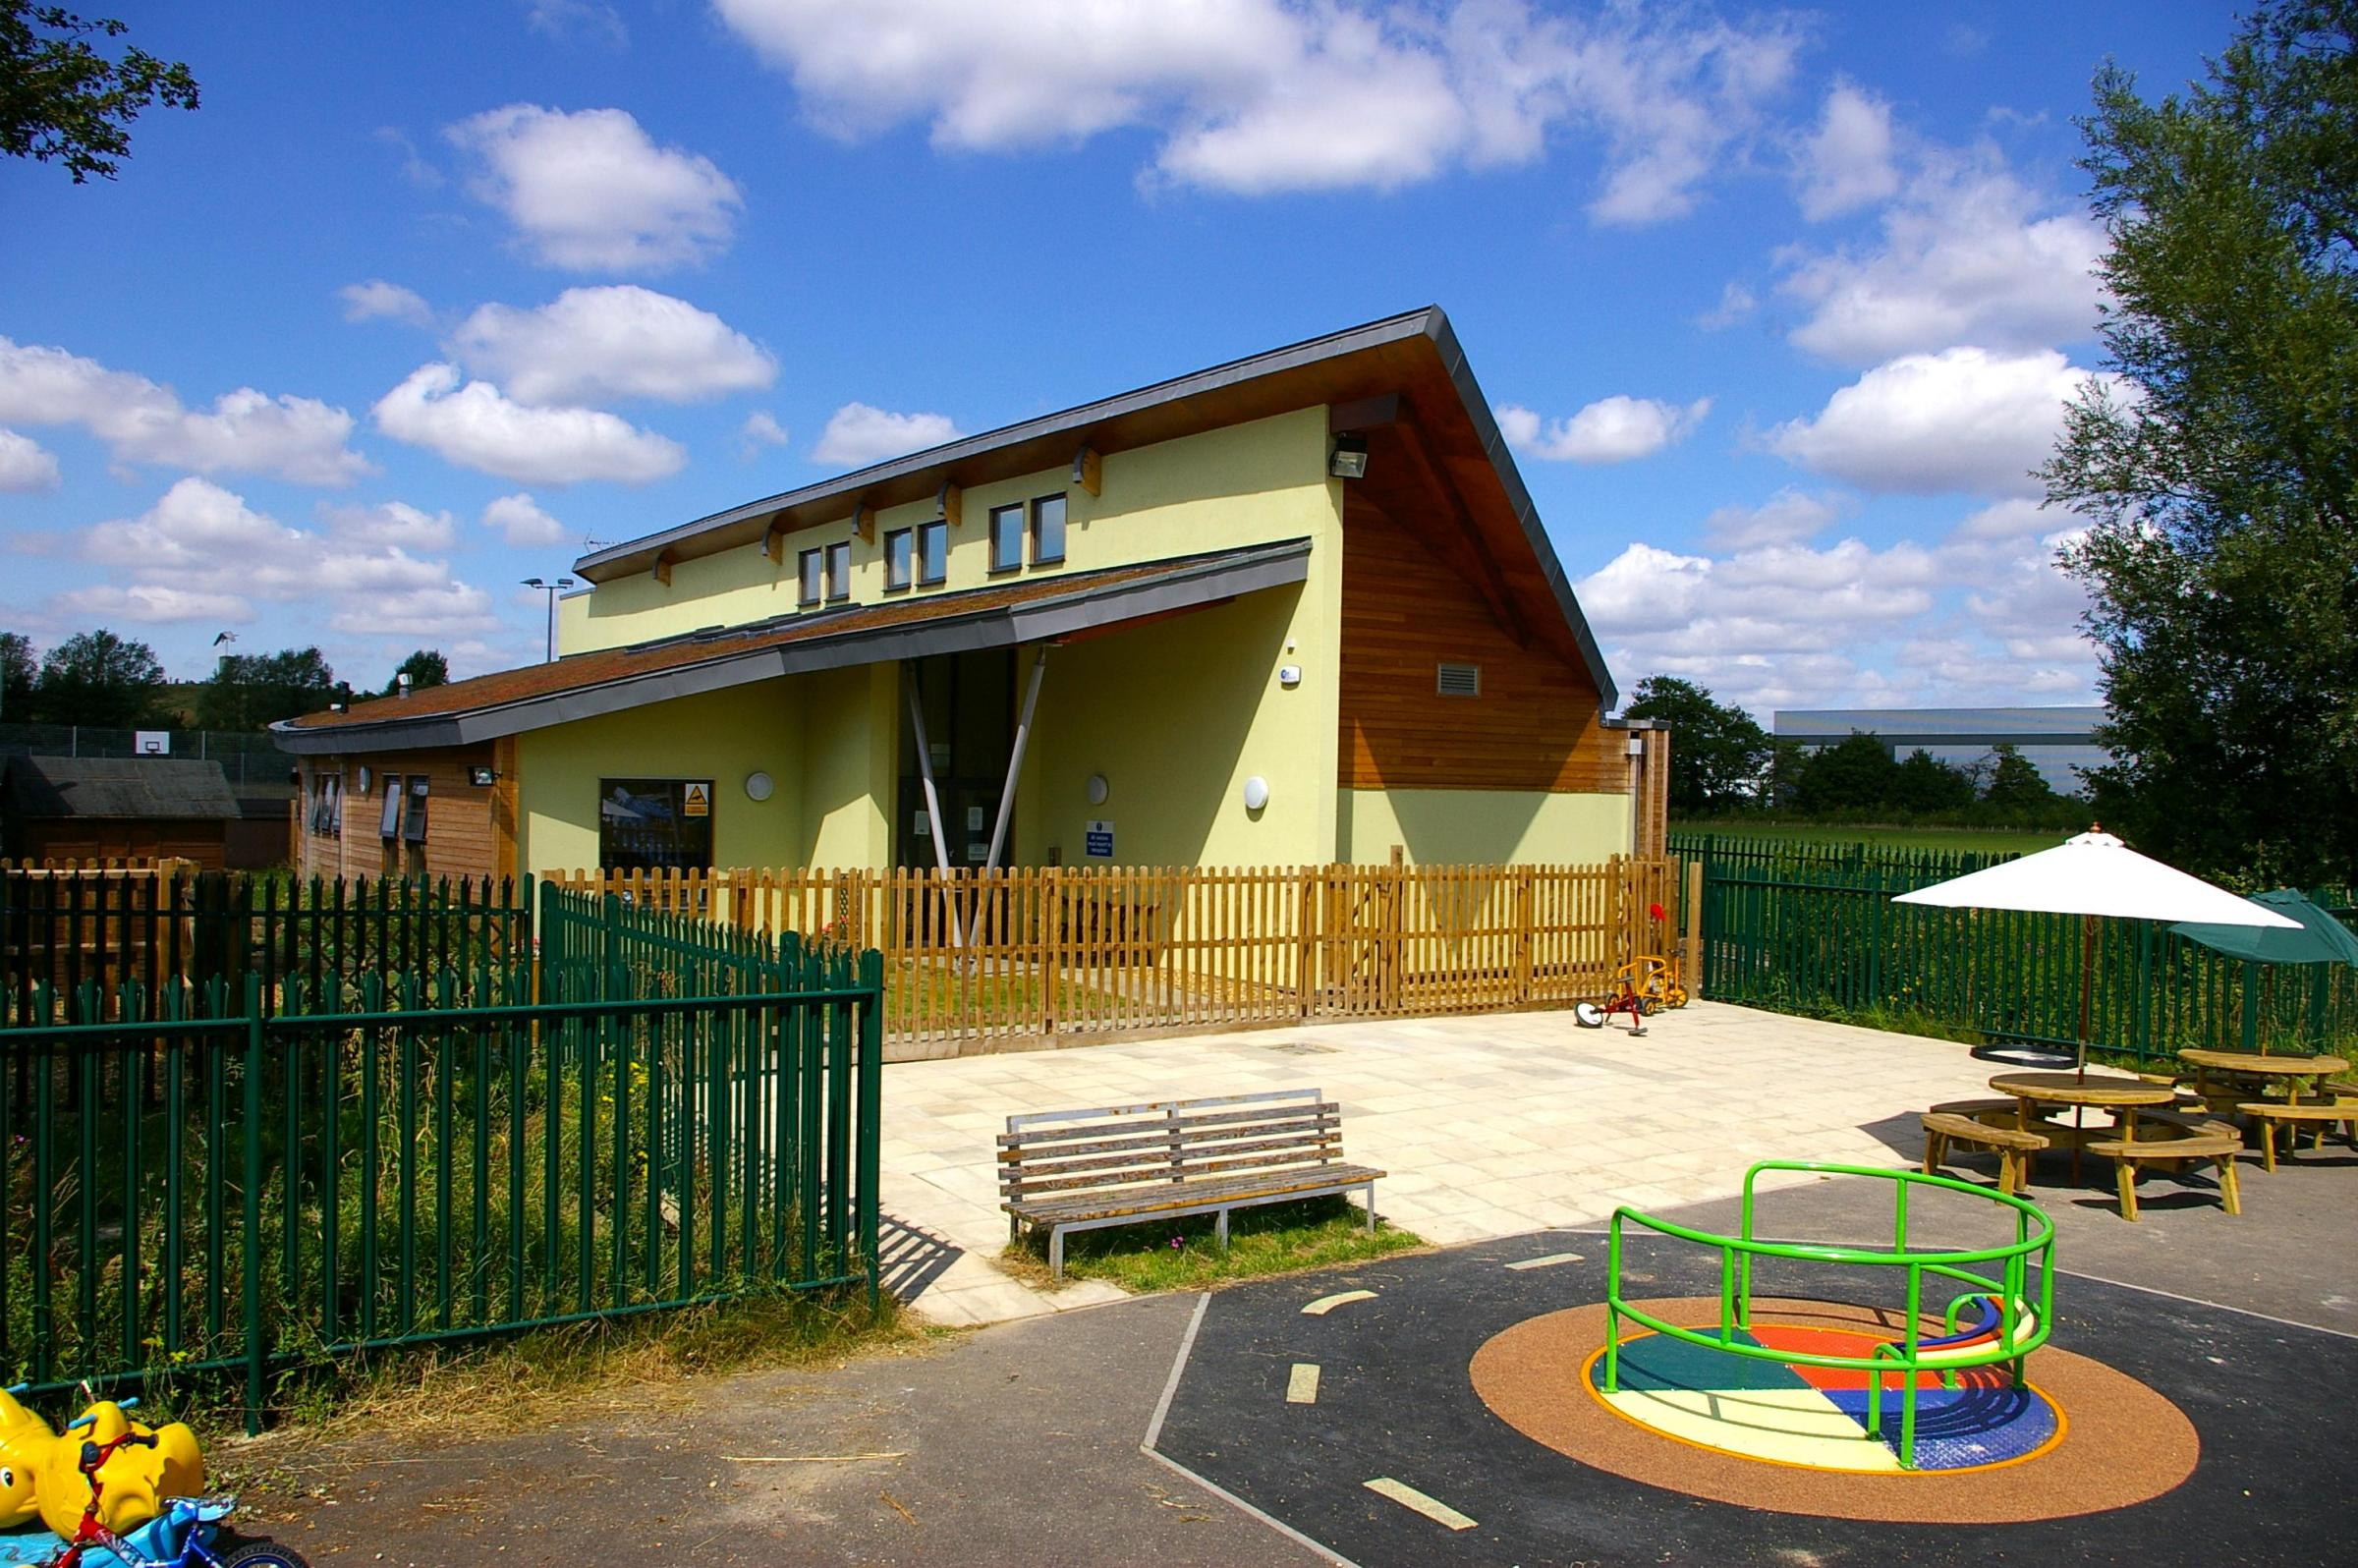 Staff at Parc children's centre praised by inspectors